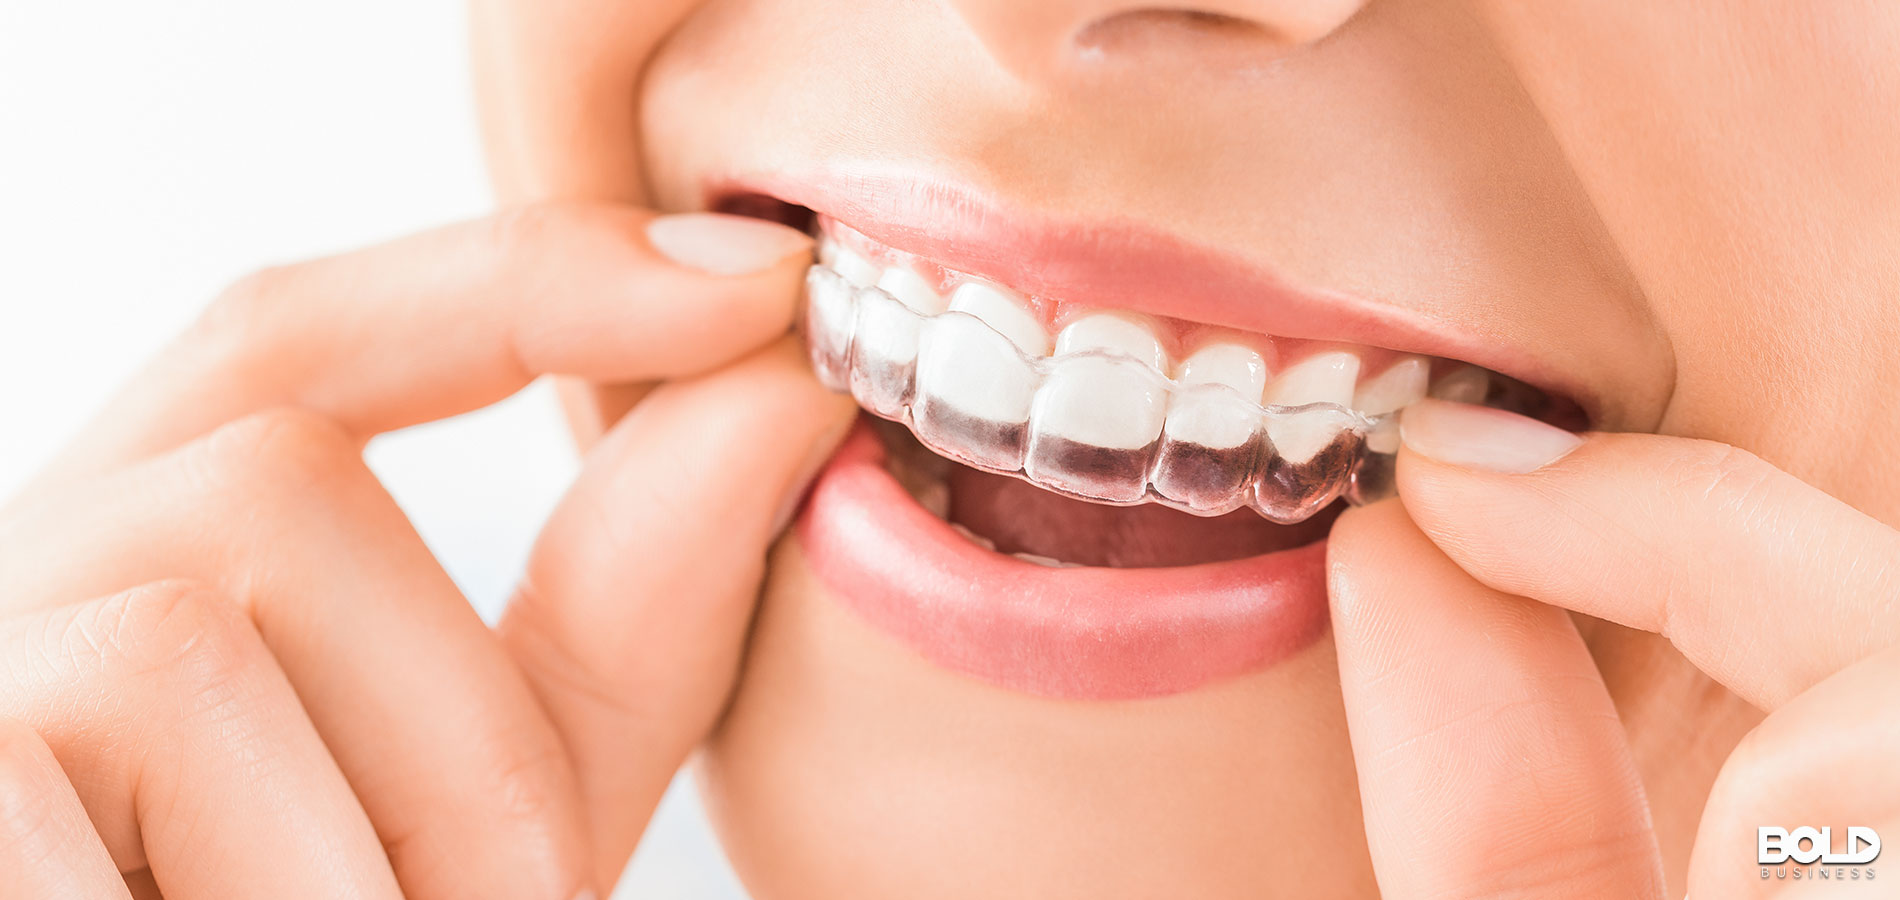 Some woman putting an Invisalign on her teeth